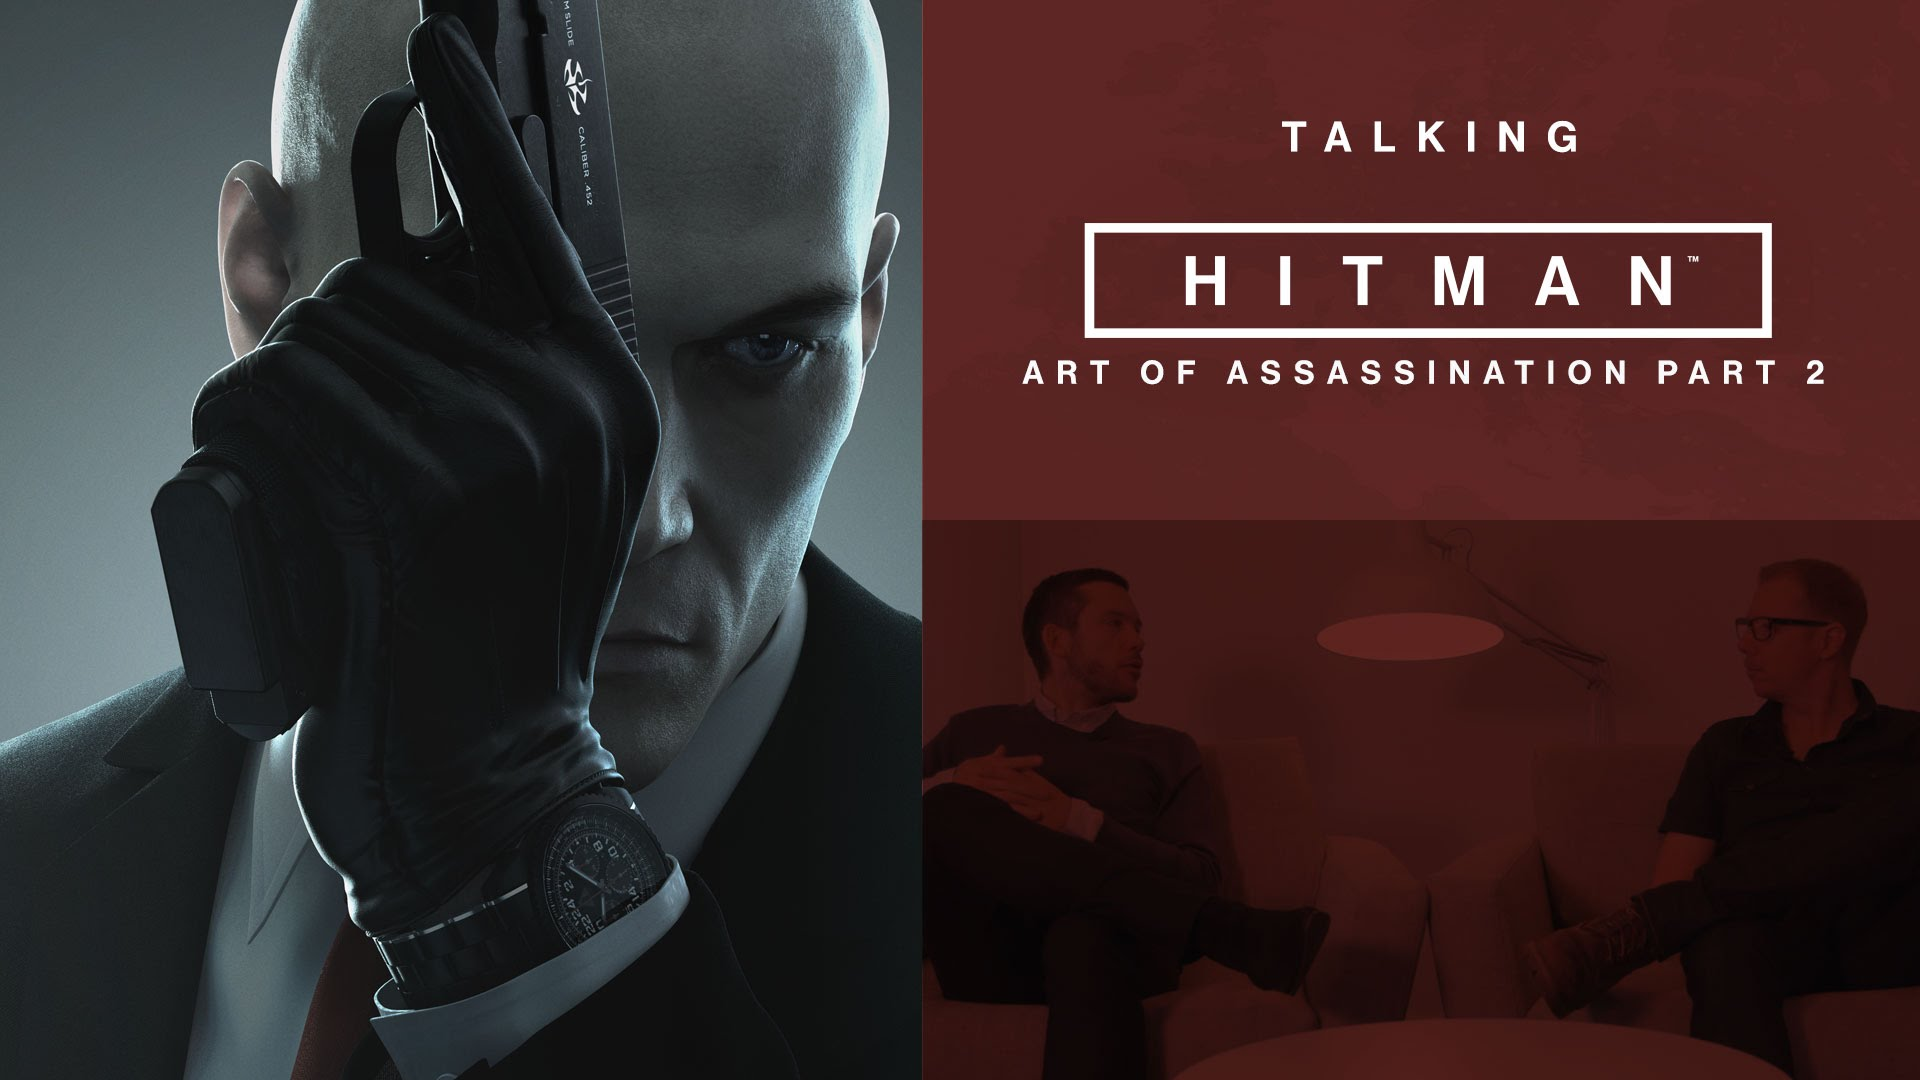 Talking Hitman: The Art of Assassination, Part 2